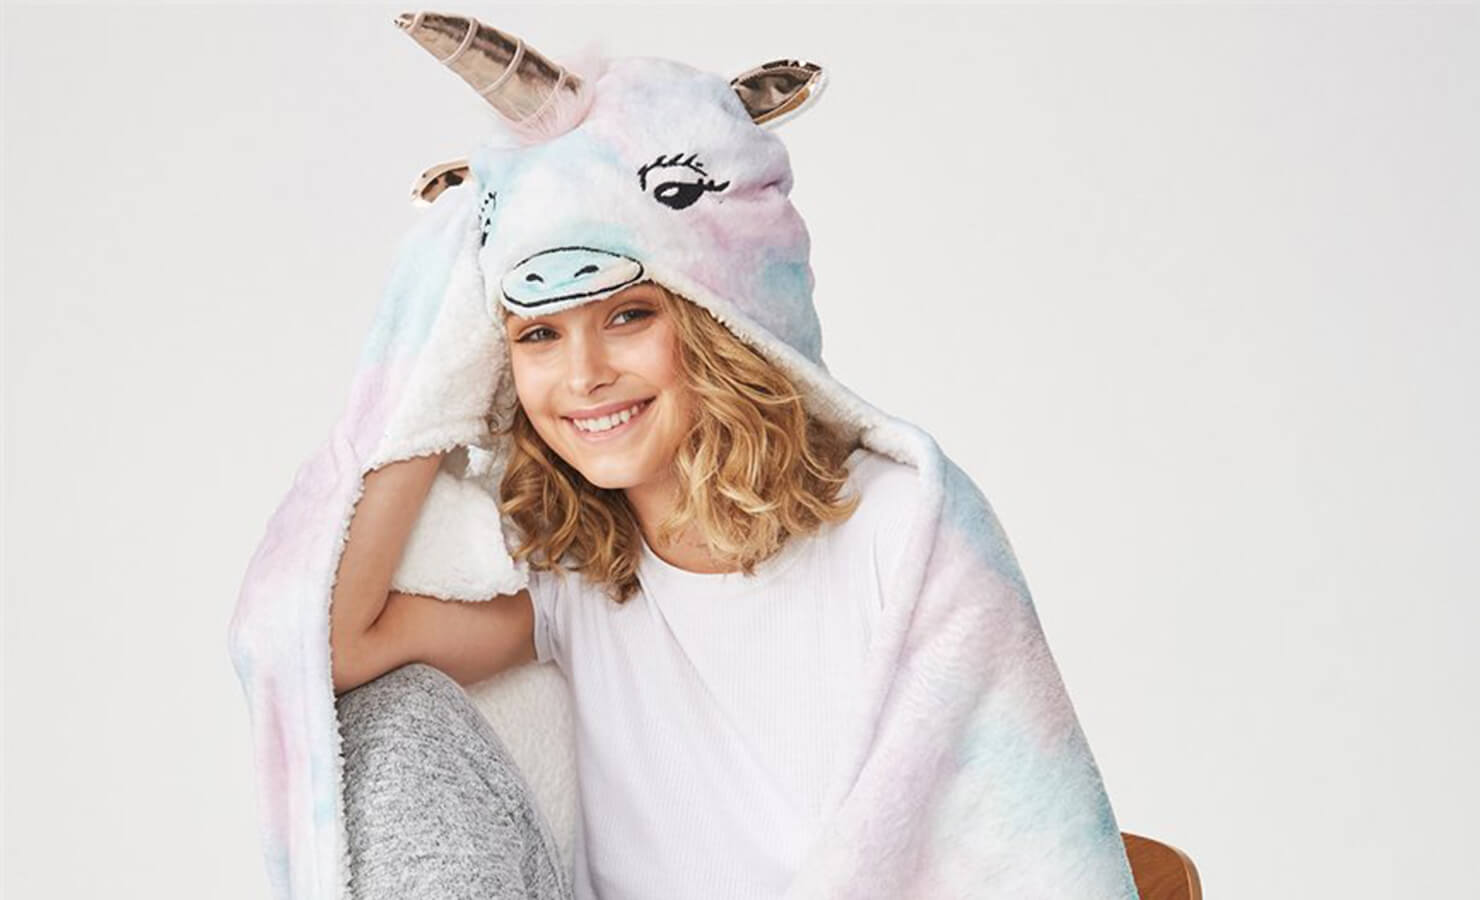 20-the-ultimate-list-of-christmas-gifts-in-malaysia-typo-unicorn-lit-blanket-gifts-for-bookworms